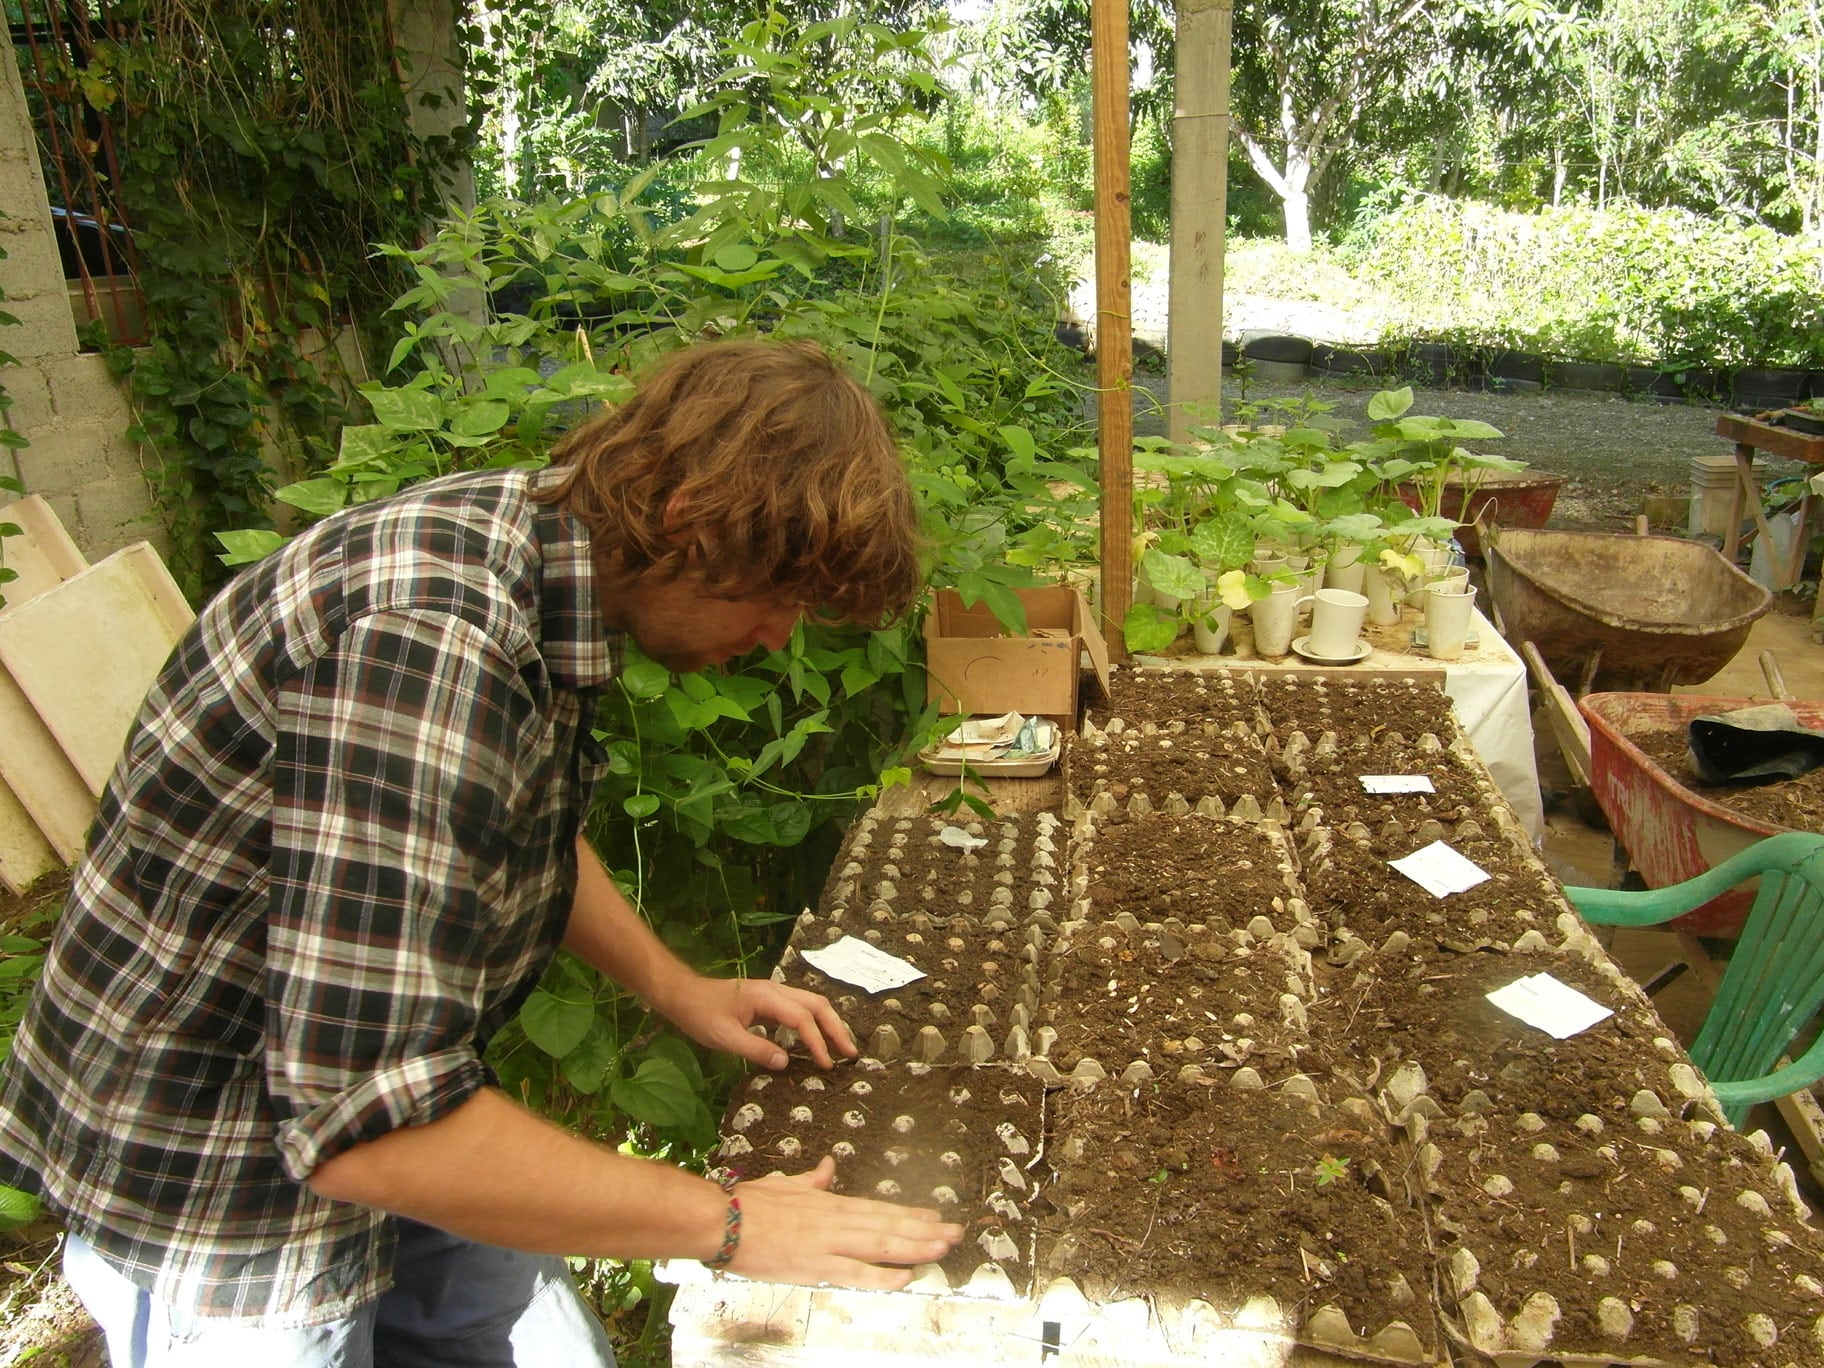 Planting Cow Pea Seeds